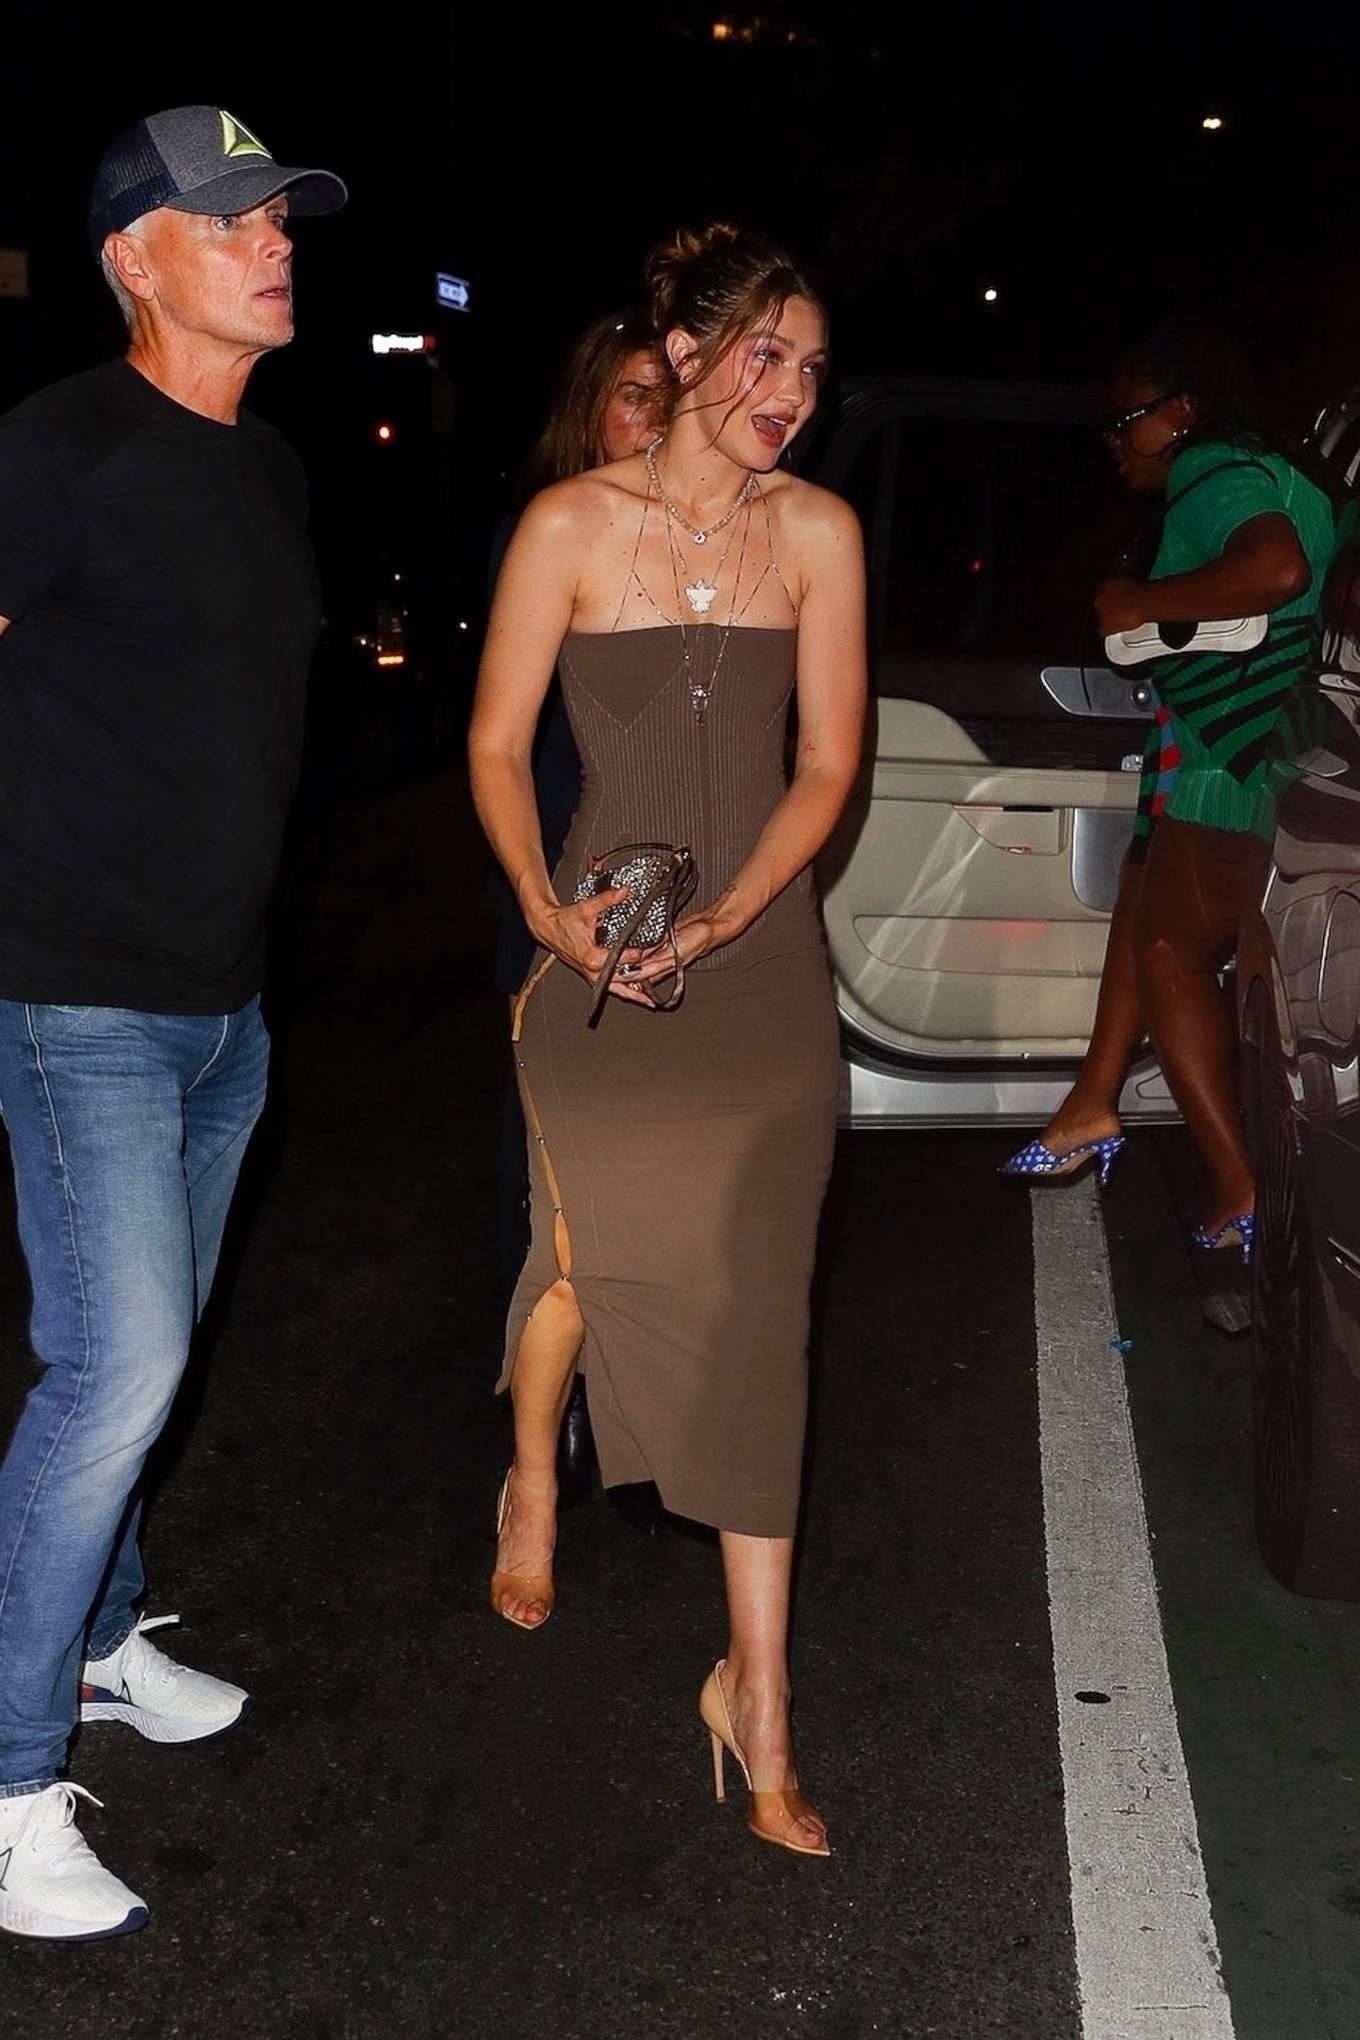 Gigi Hadid donning pointed beige completely see-through slip on pumps by Gianvito Rossi with stiletto heels